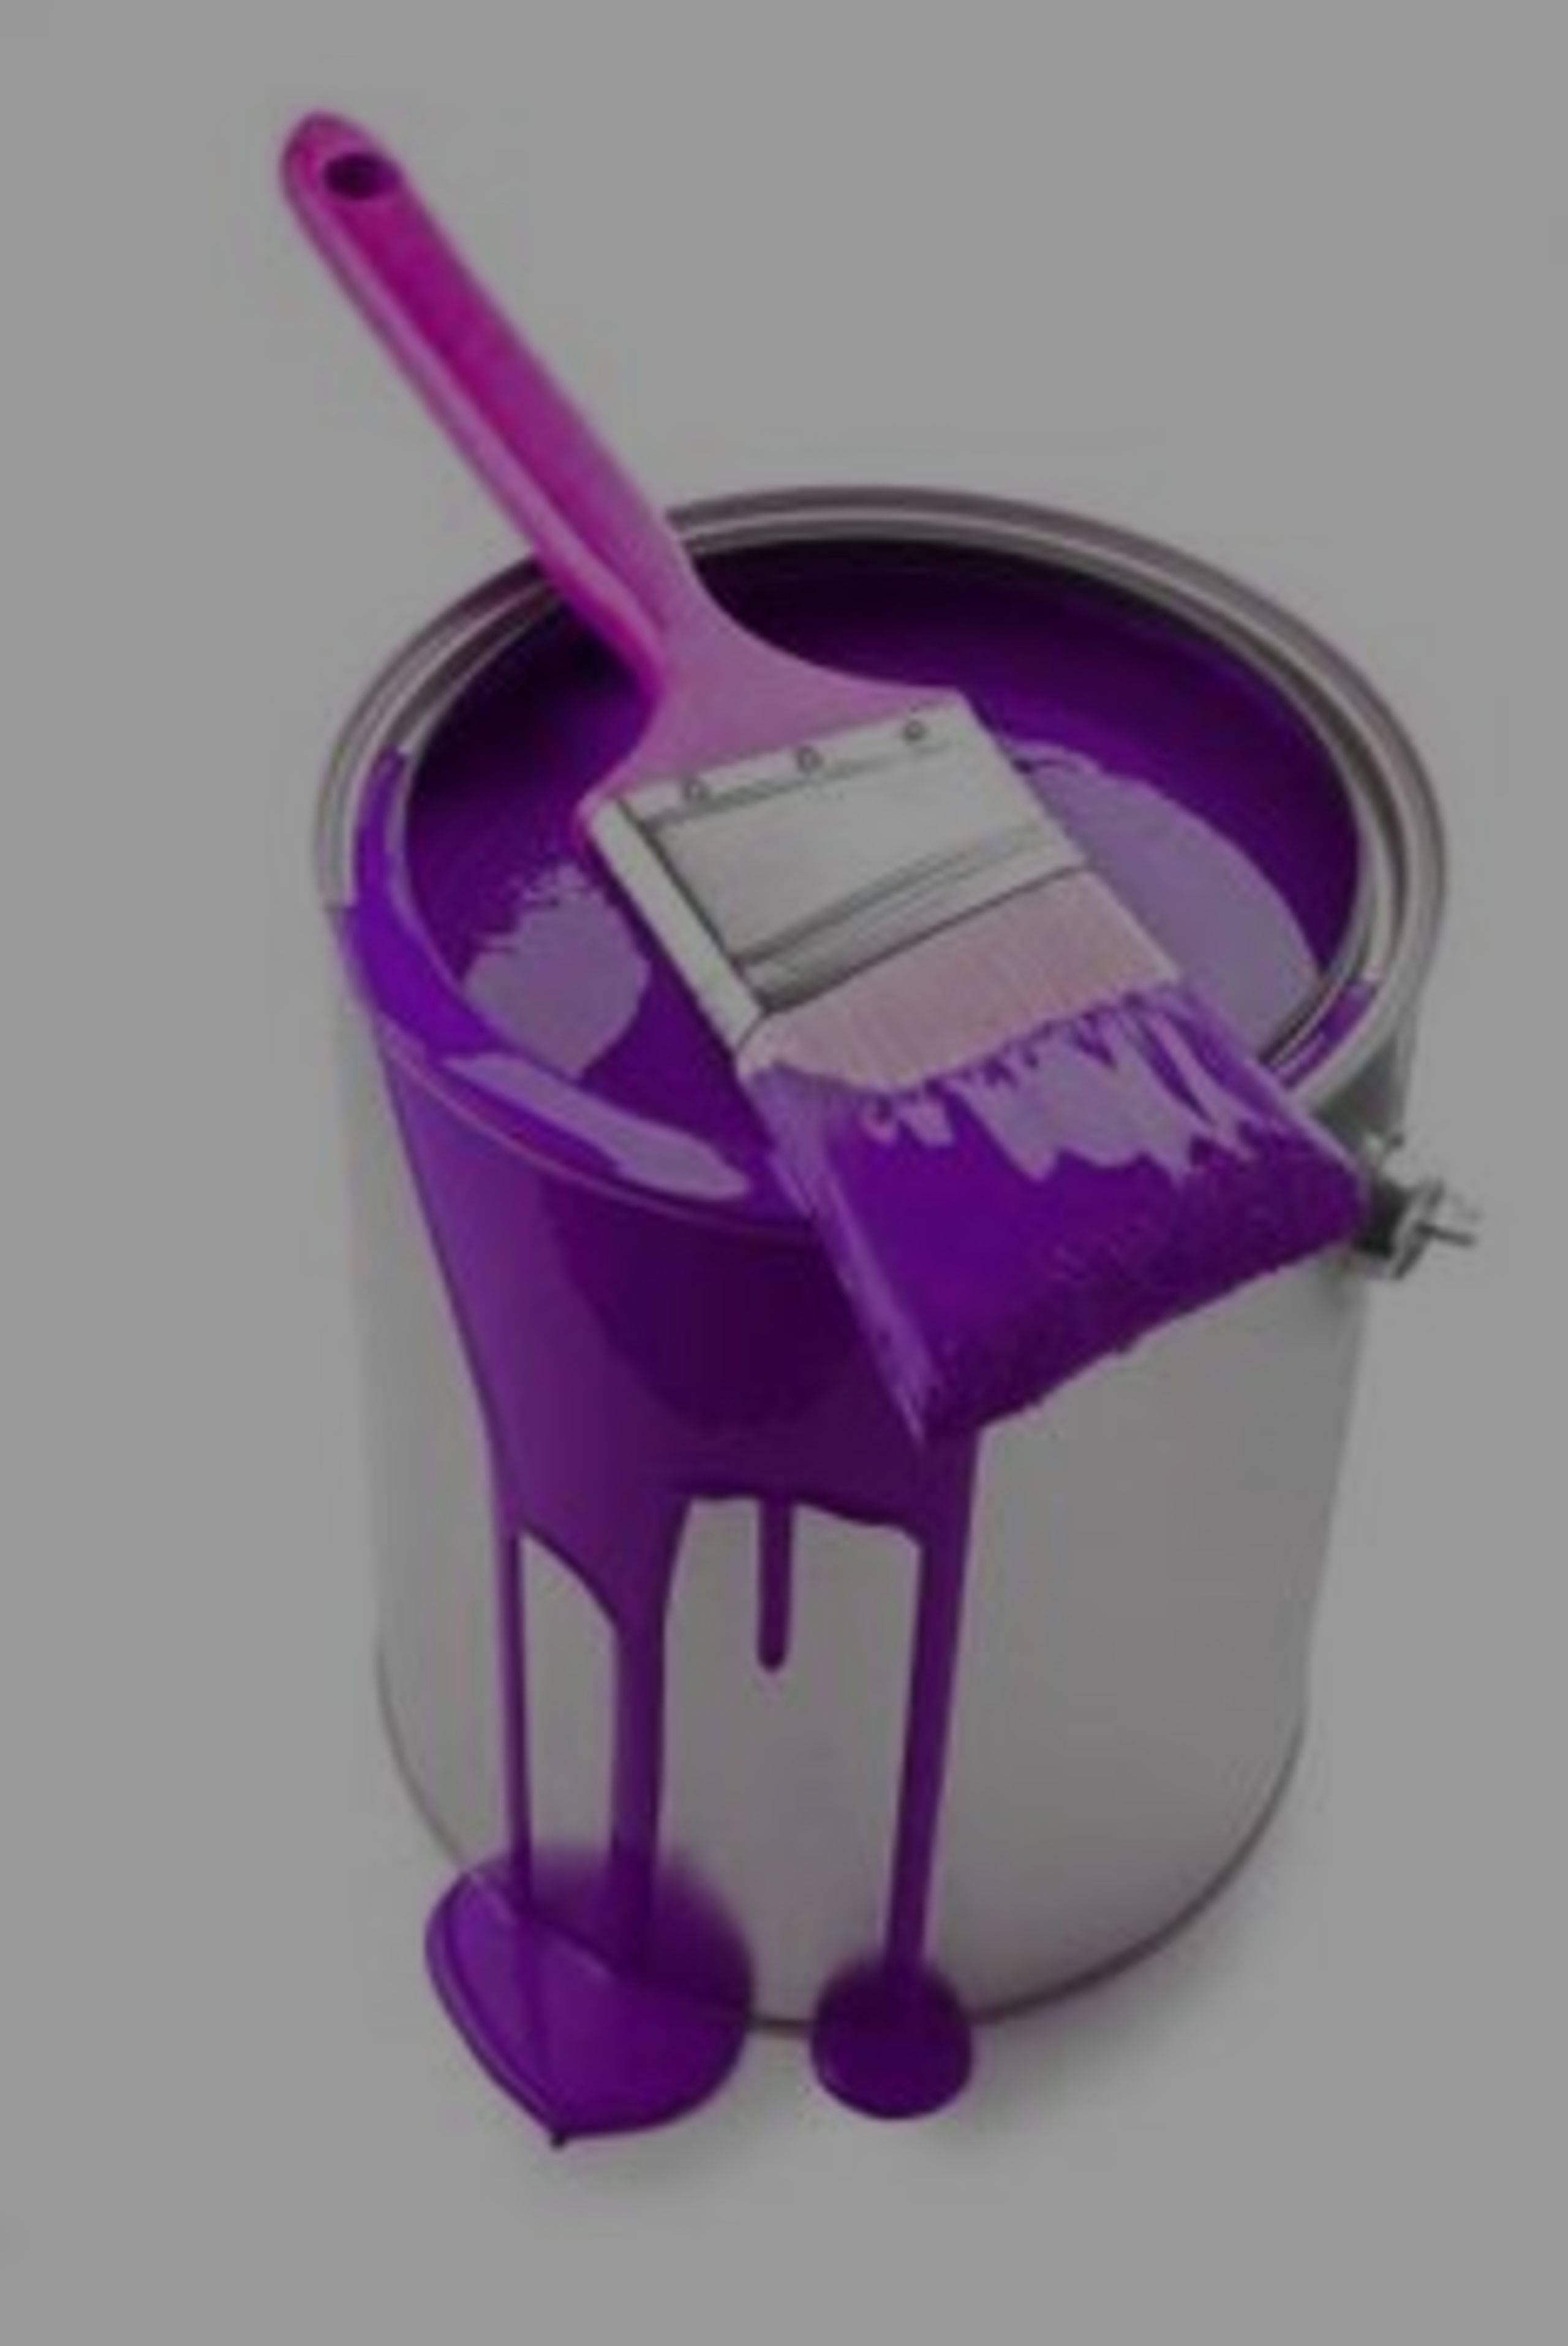 Lead Based Paint Information